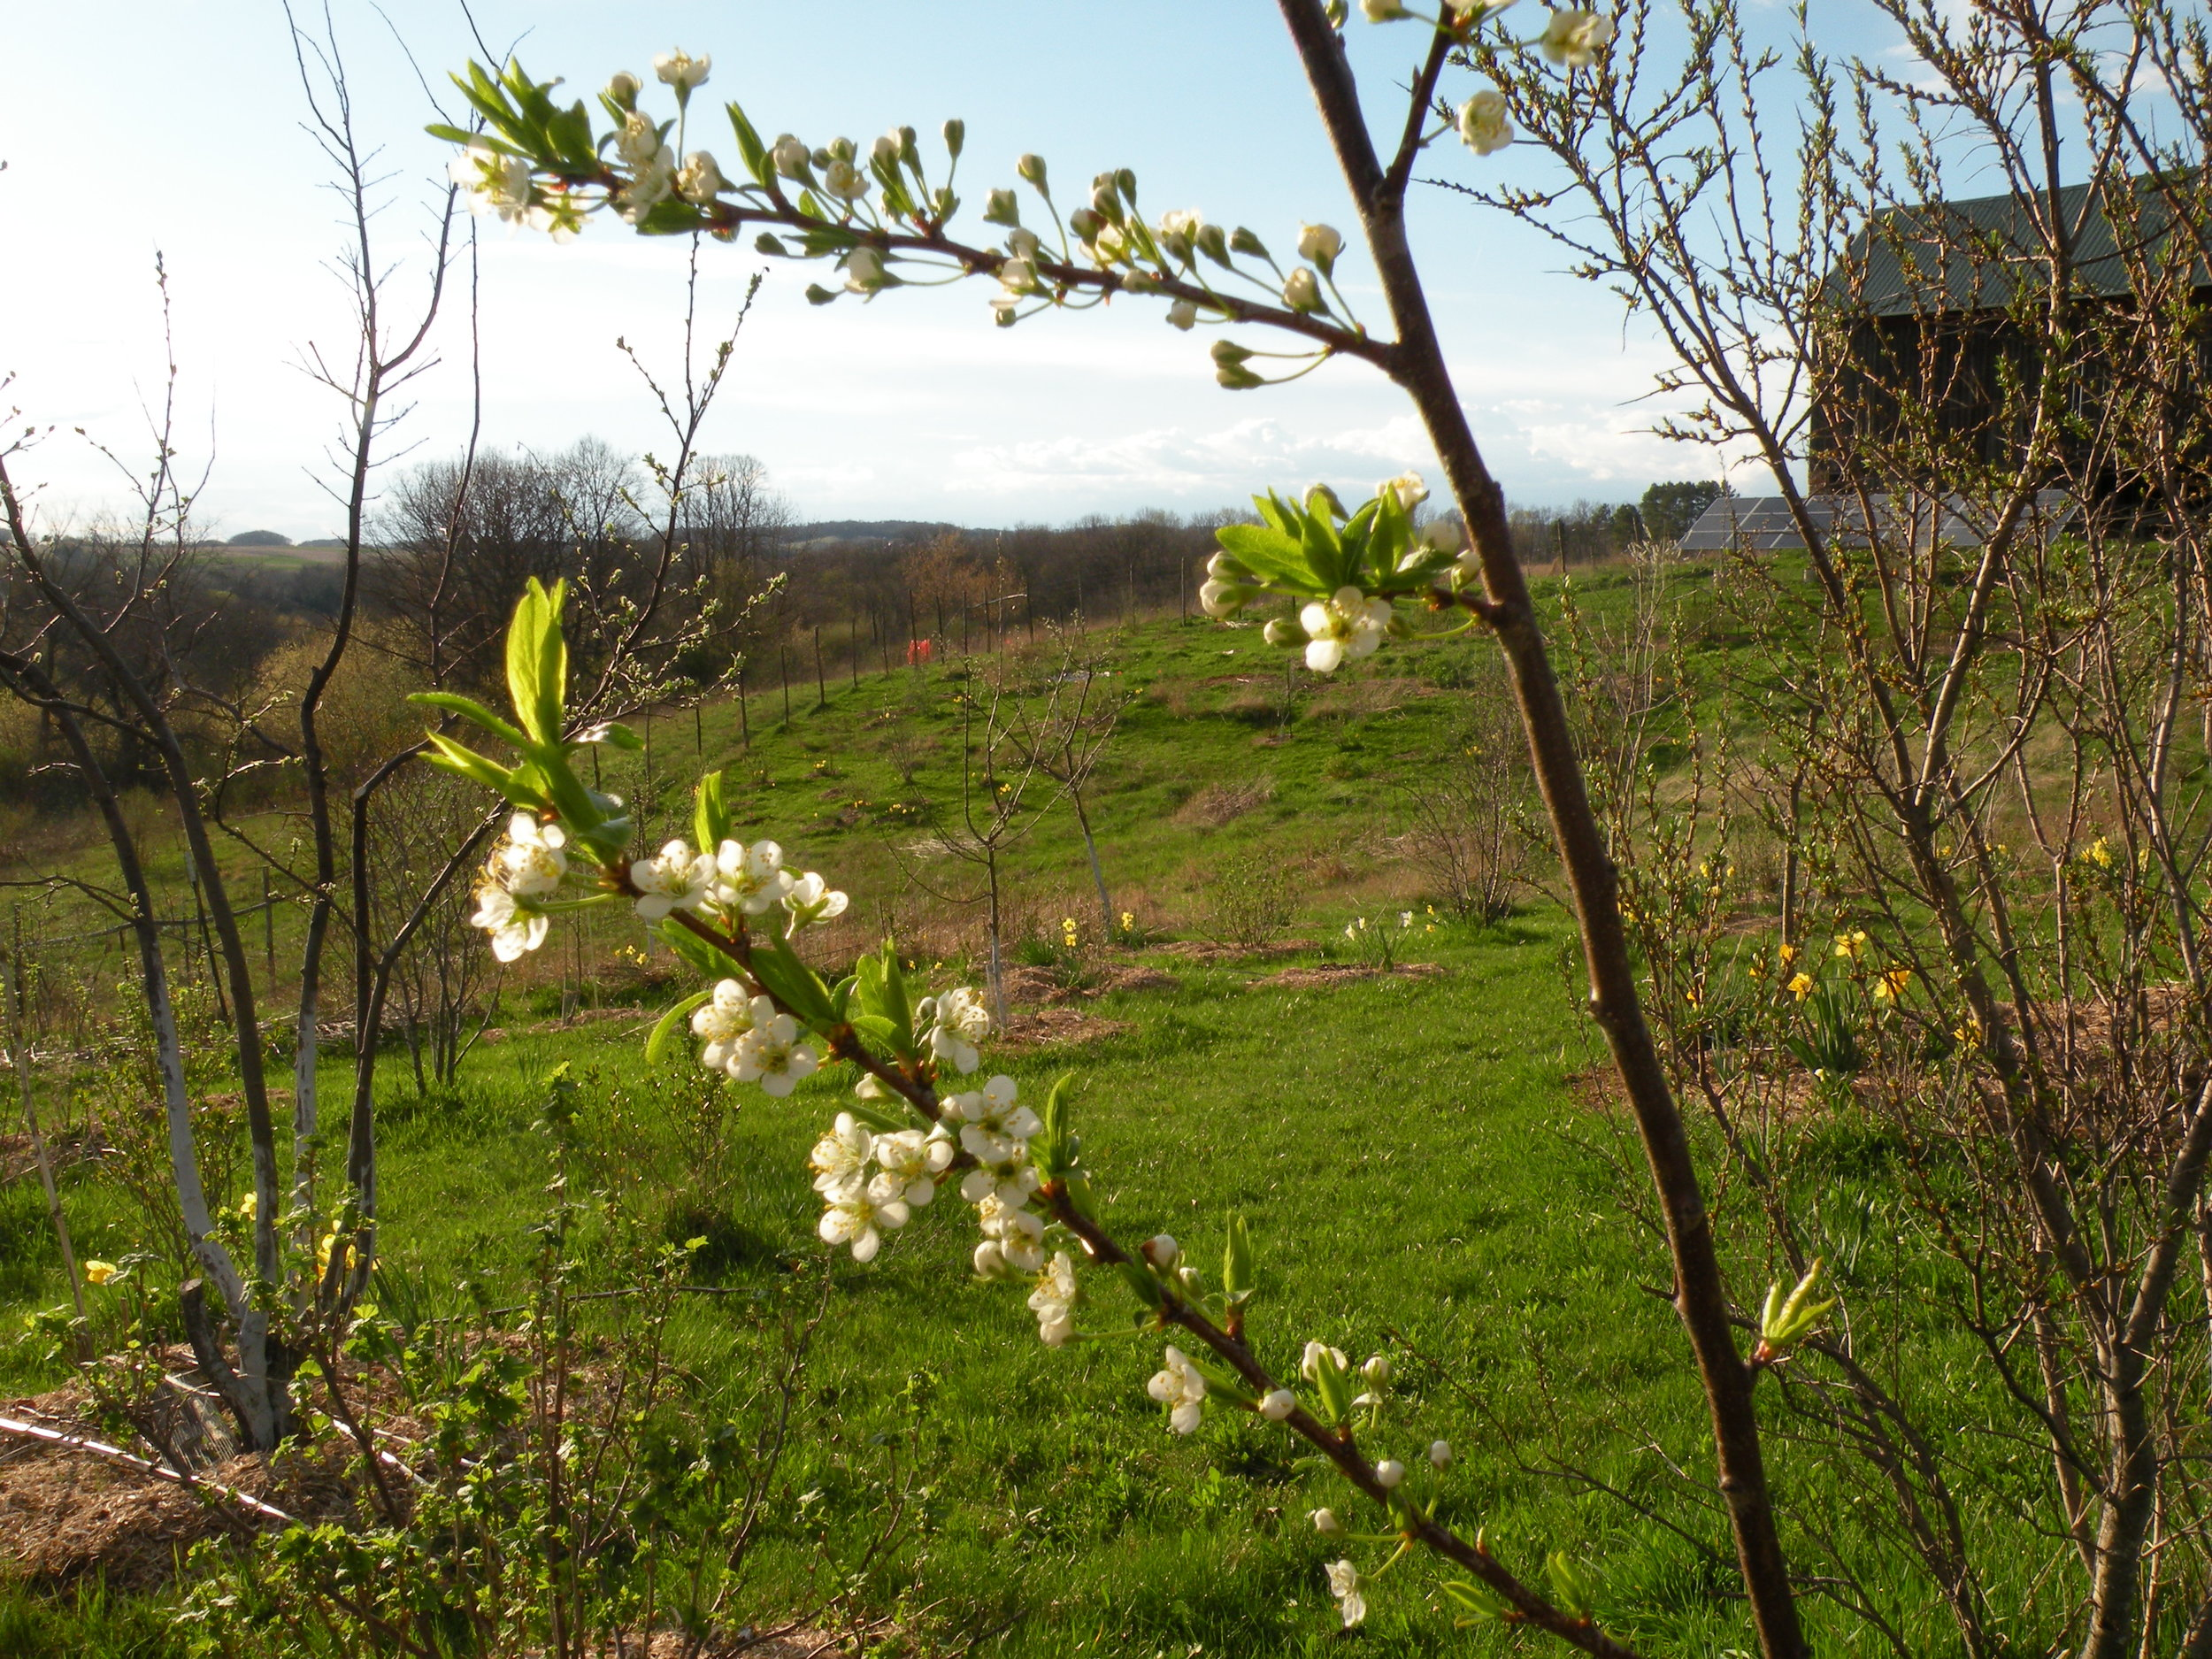 plum blossoms sweetening the orchard afternoon. Photo by Rob McClure